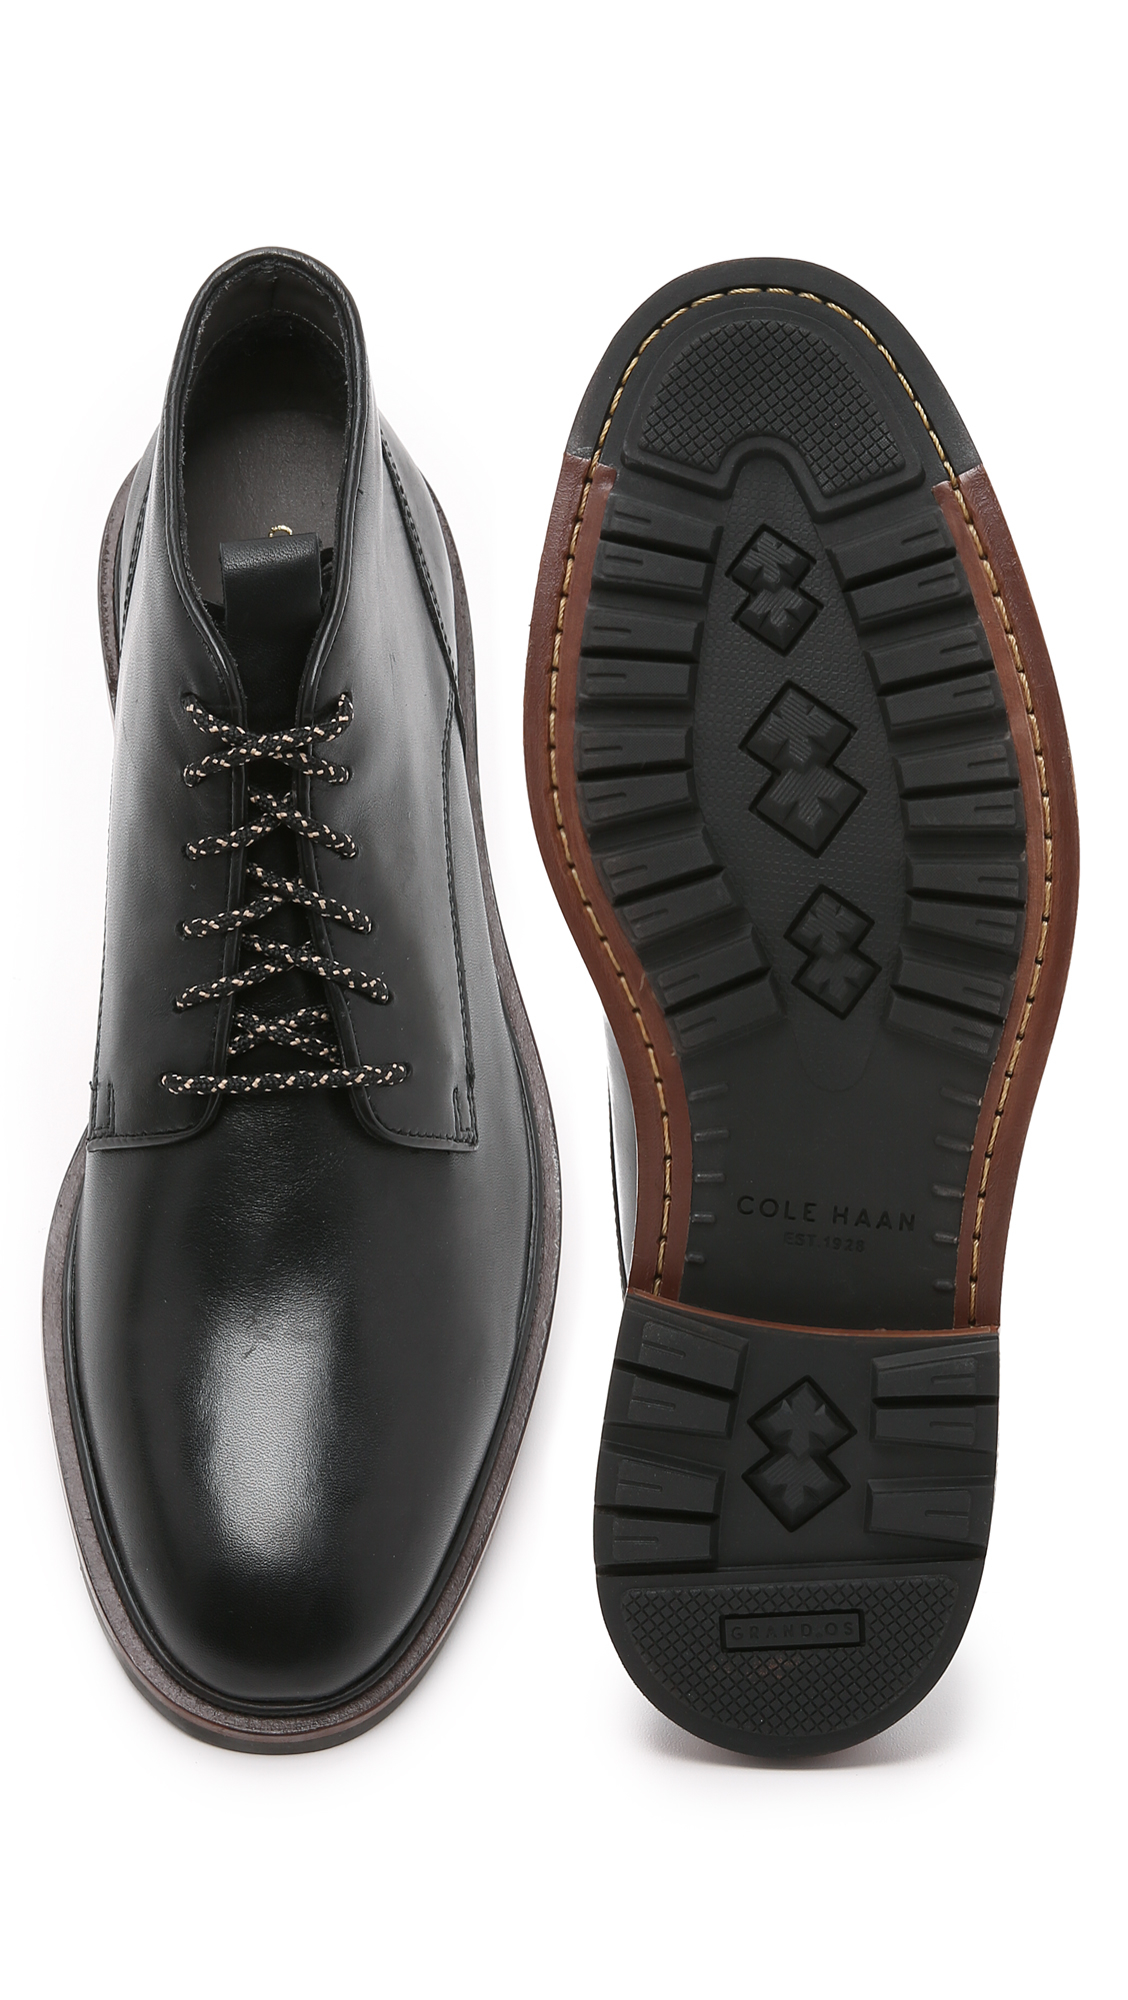 f08f317803e1 Lyst - Cole Haan Cranston Chukkas in Black for Men